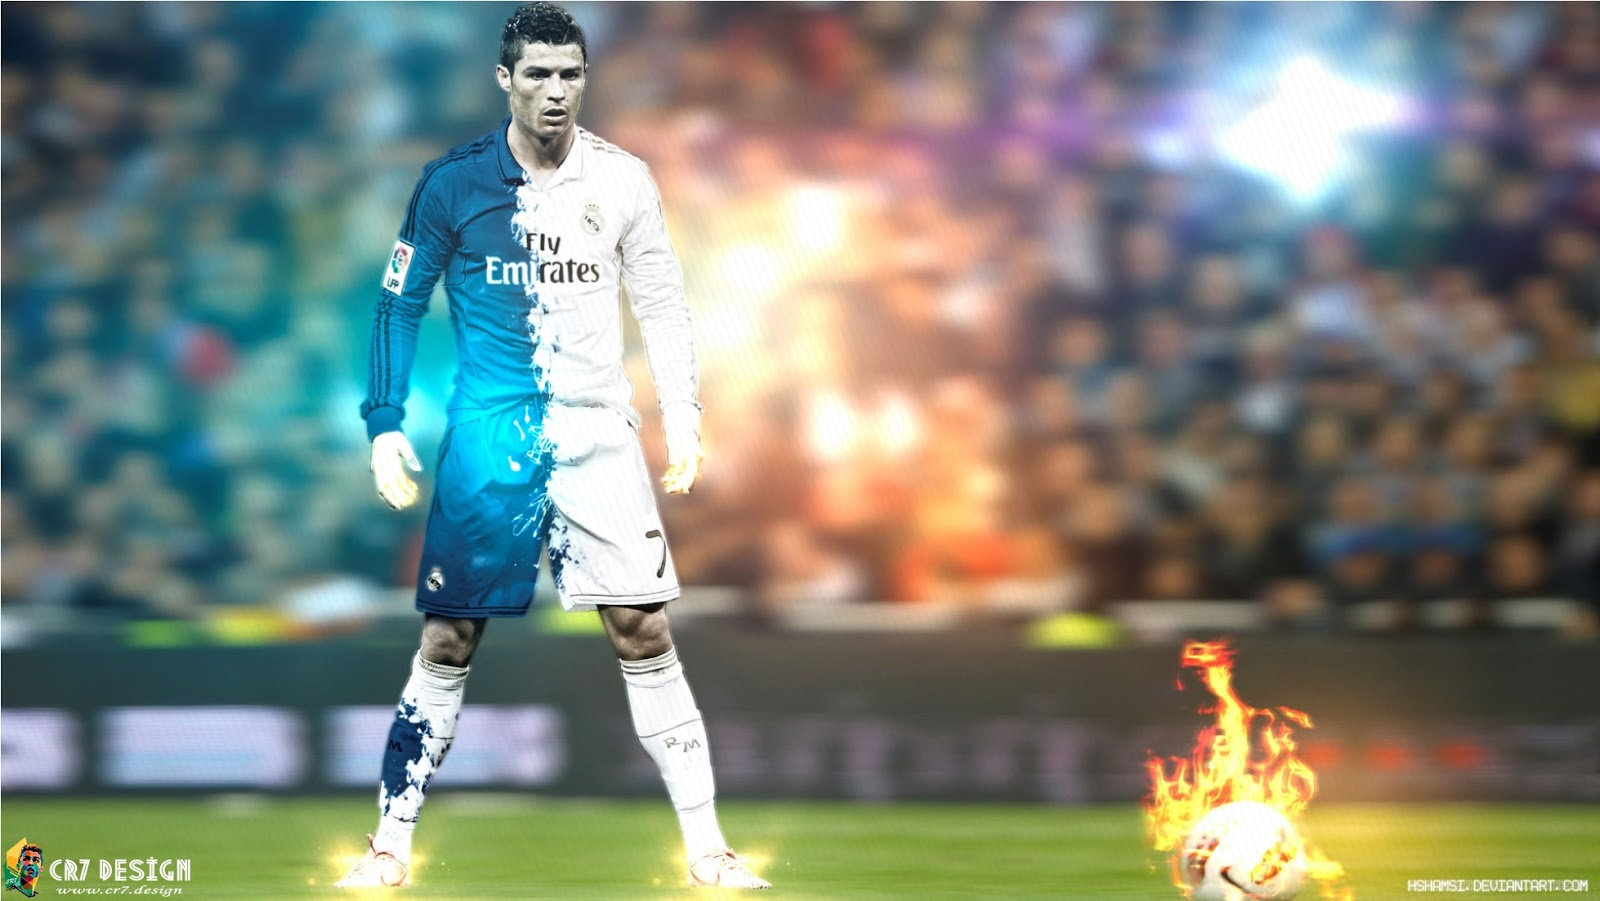 ciristiano-ronaldo-wallpaper-design-88